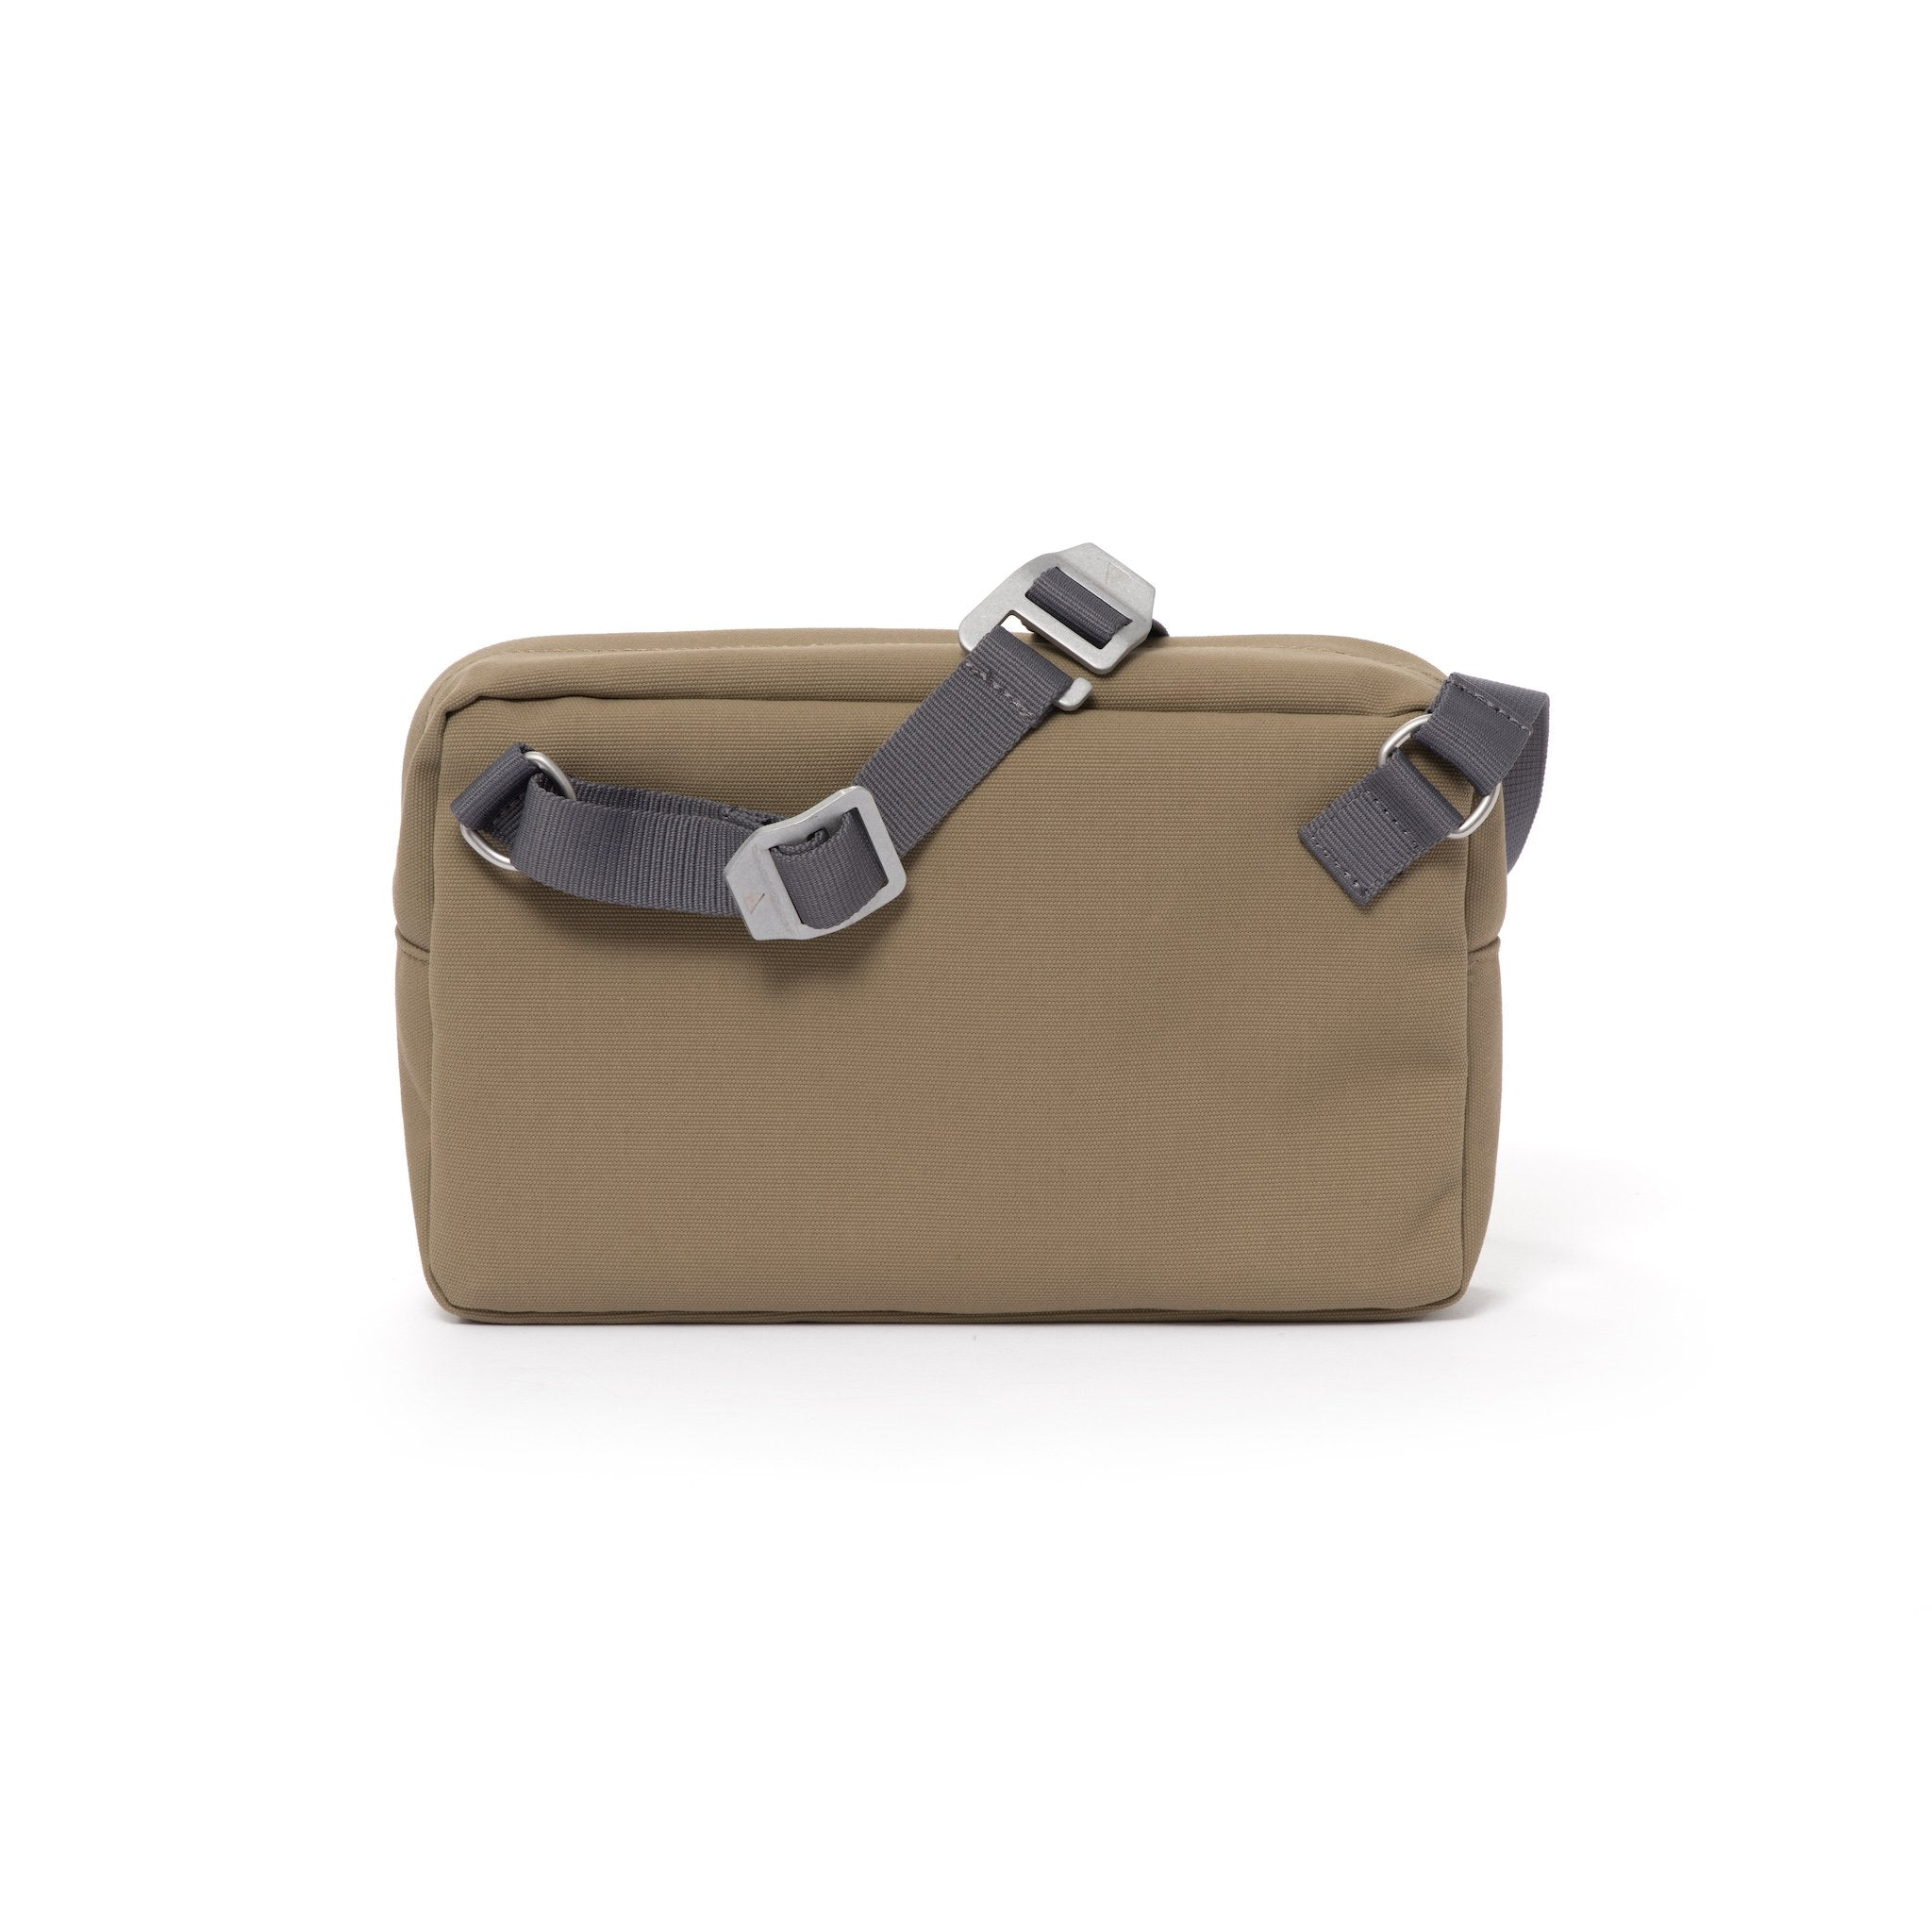 Khaki shoulder bag with webbing strap and aluminium buckles.